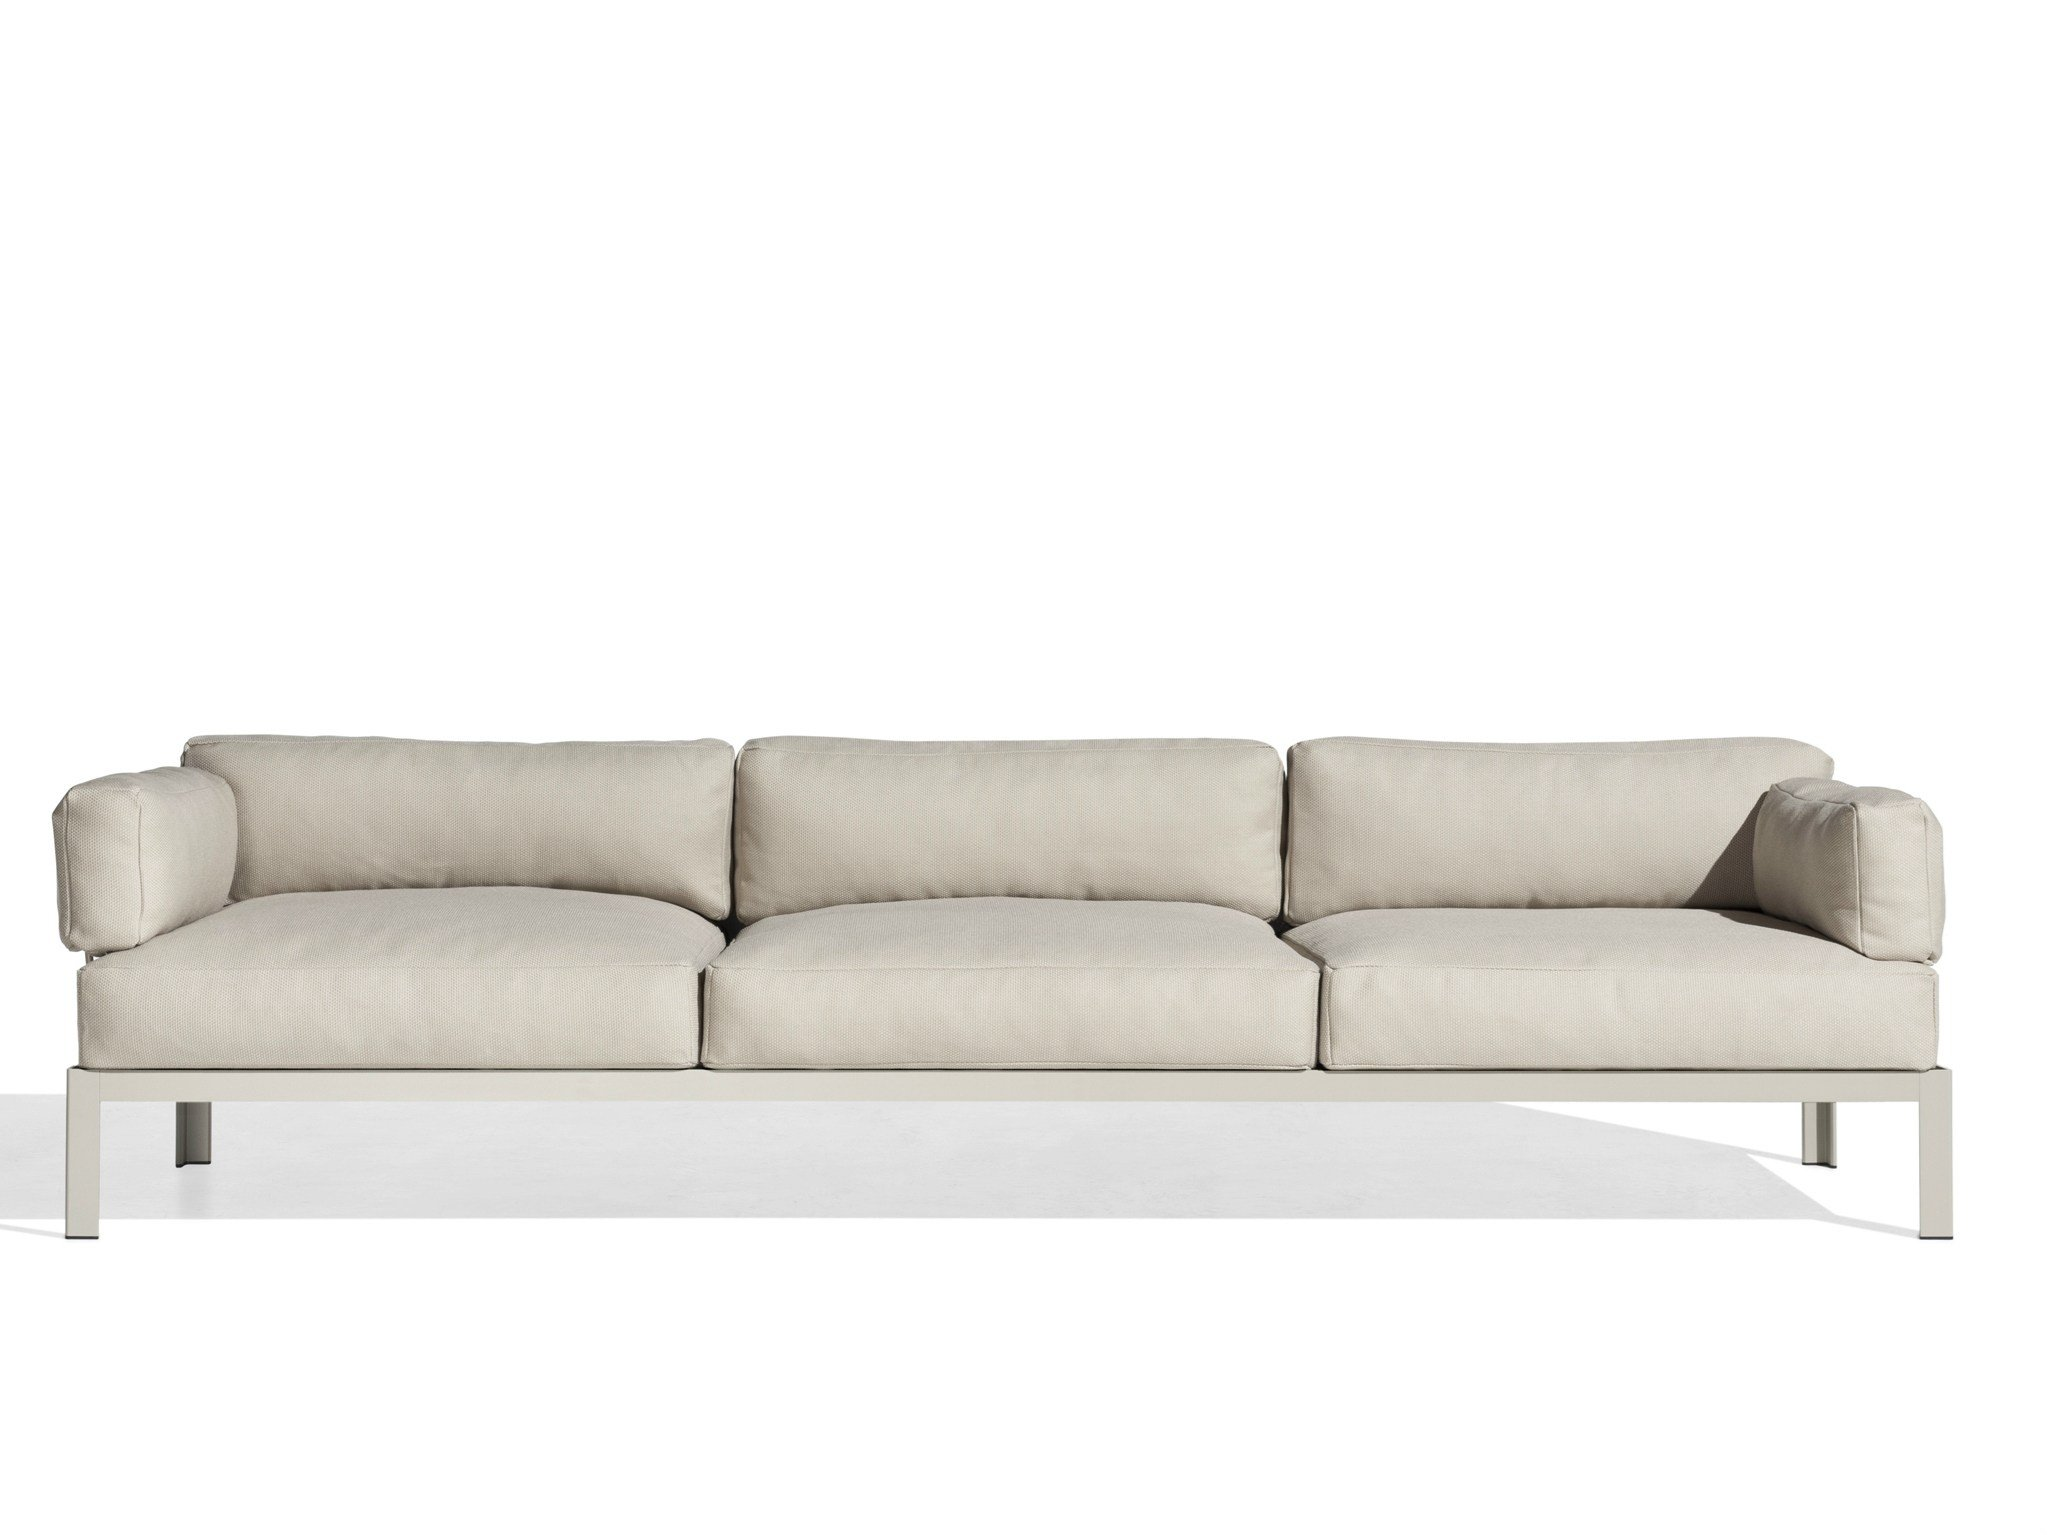 Sofas tres plazas fabulous sof plazas con y poufs with for Sofas de tres plazas